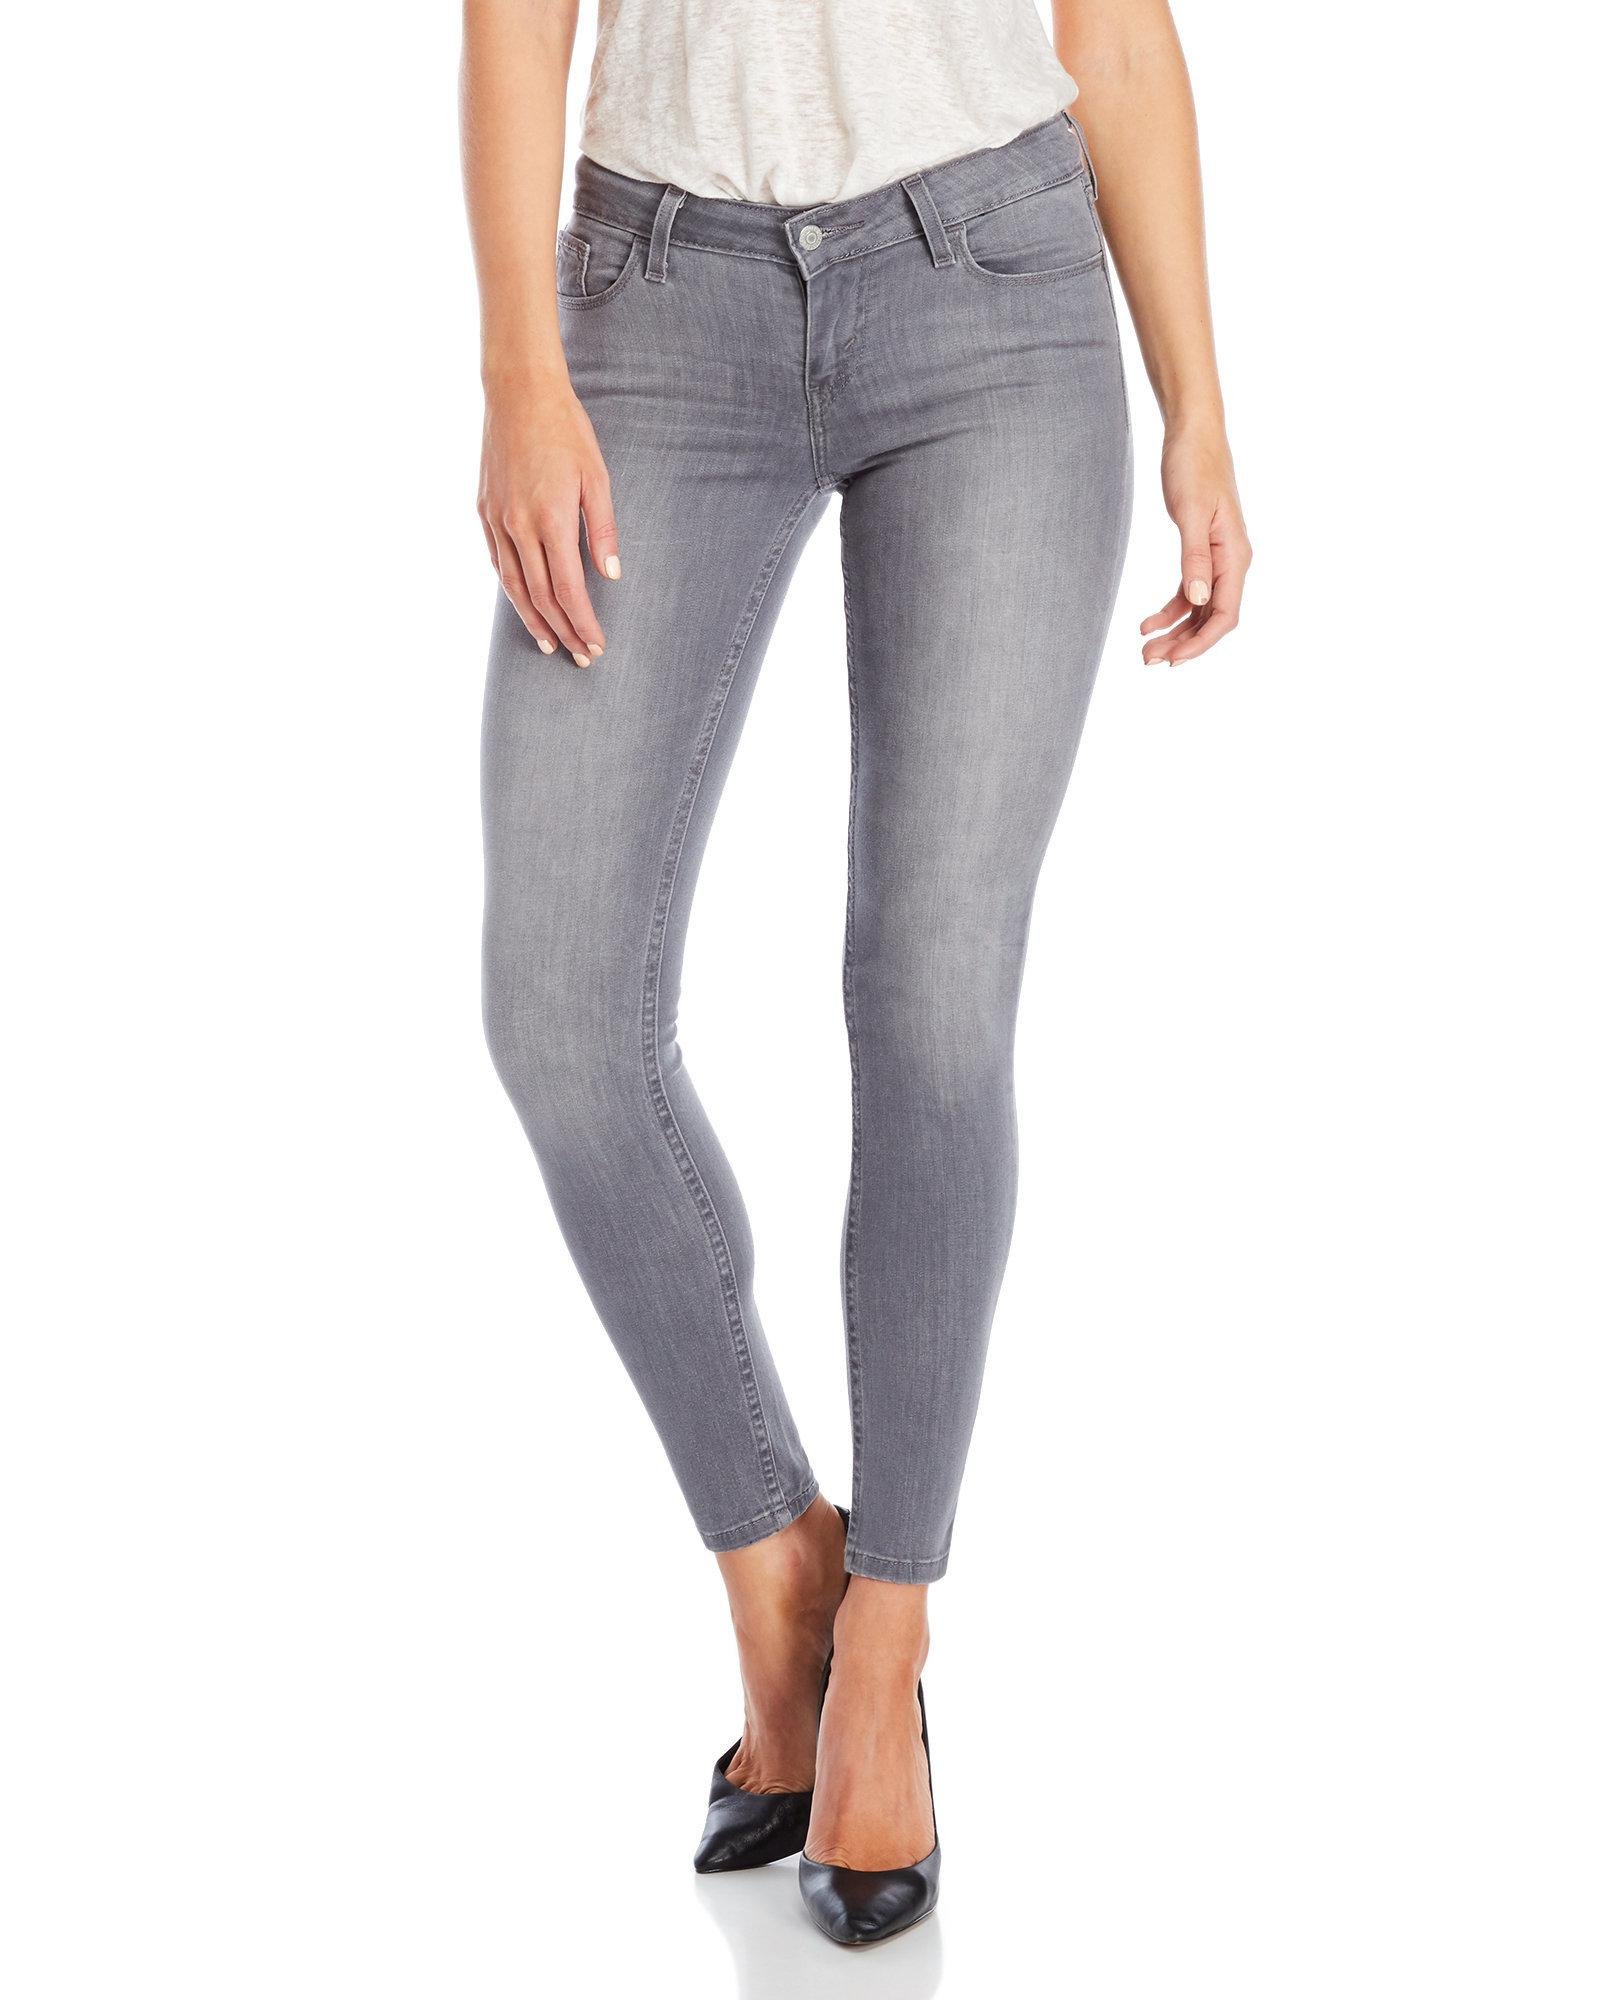 745627f2 Levi's 535 Super Skinny Jeans in Gray - Lyst